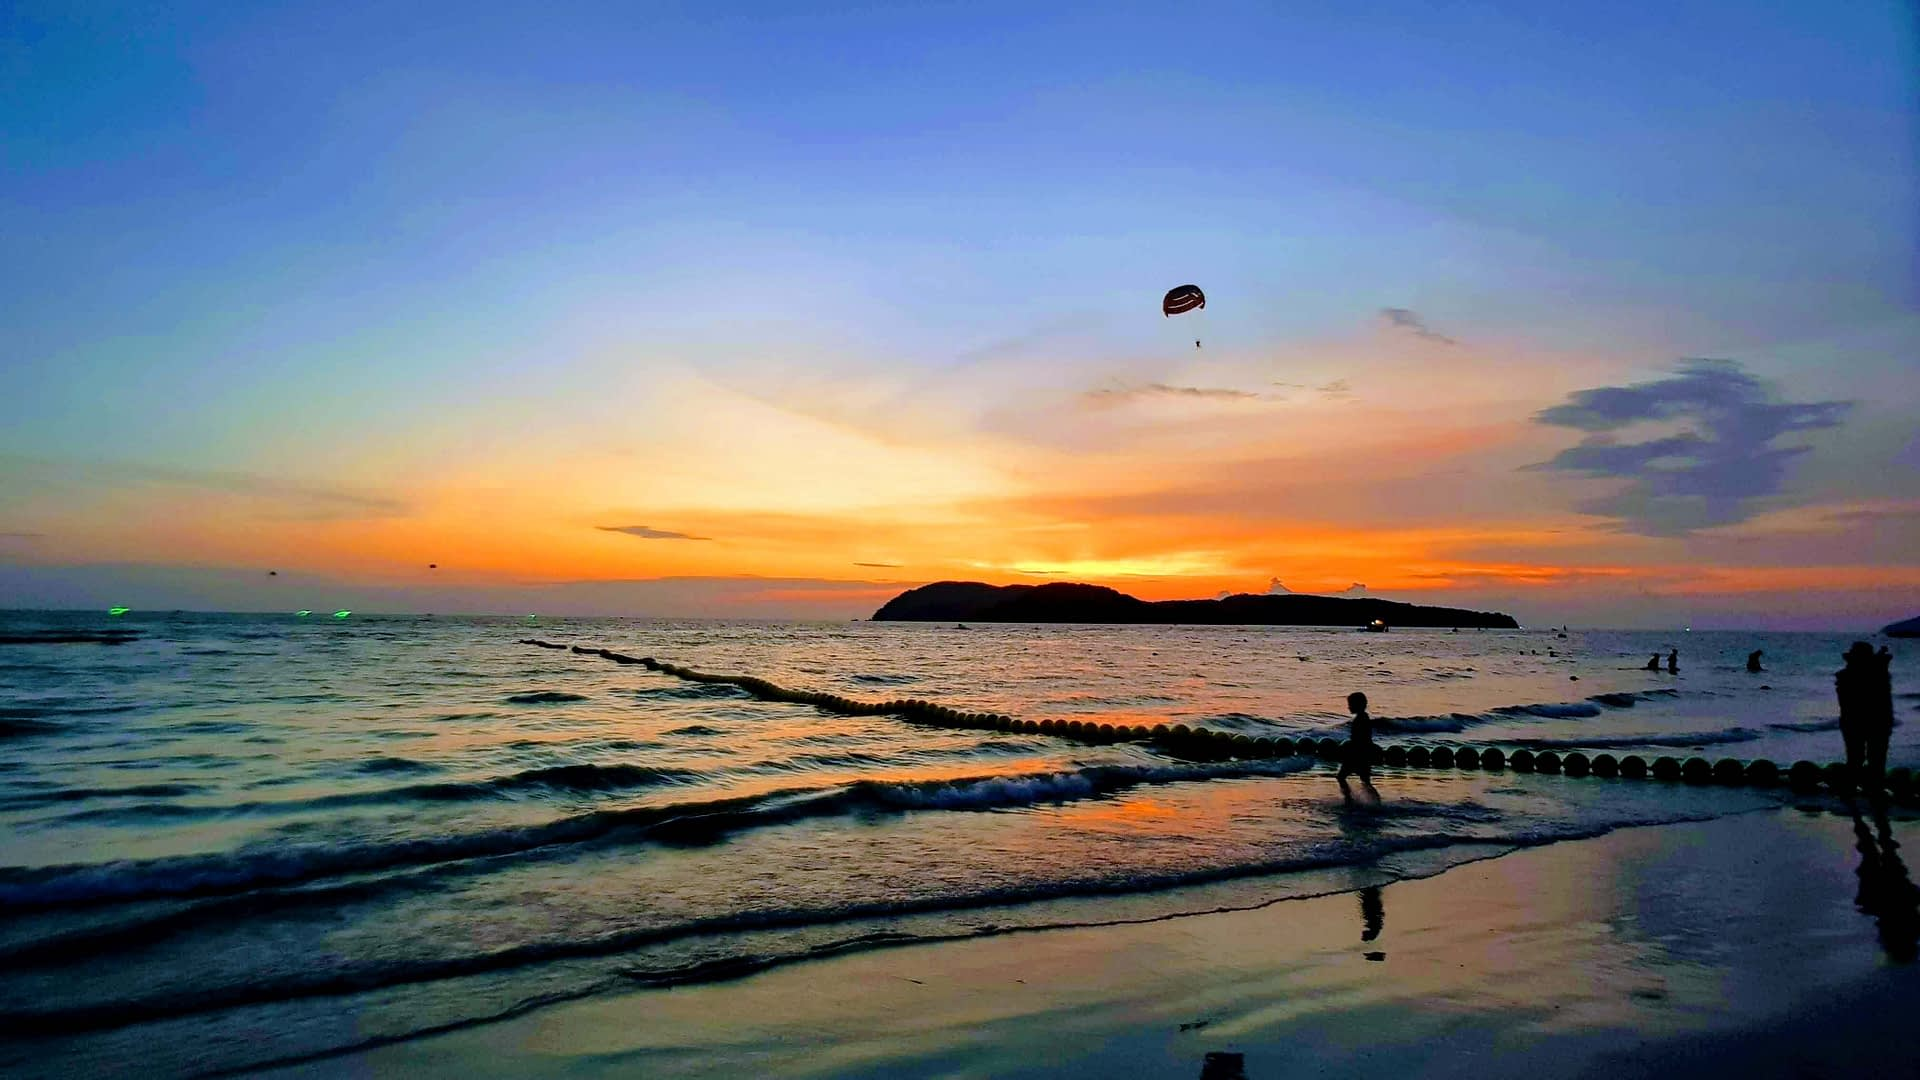 What Friends And Couples Can Enjoy In Langkawi